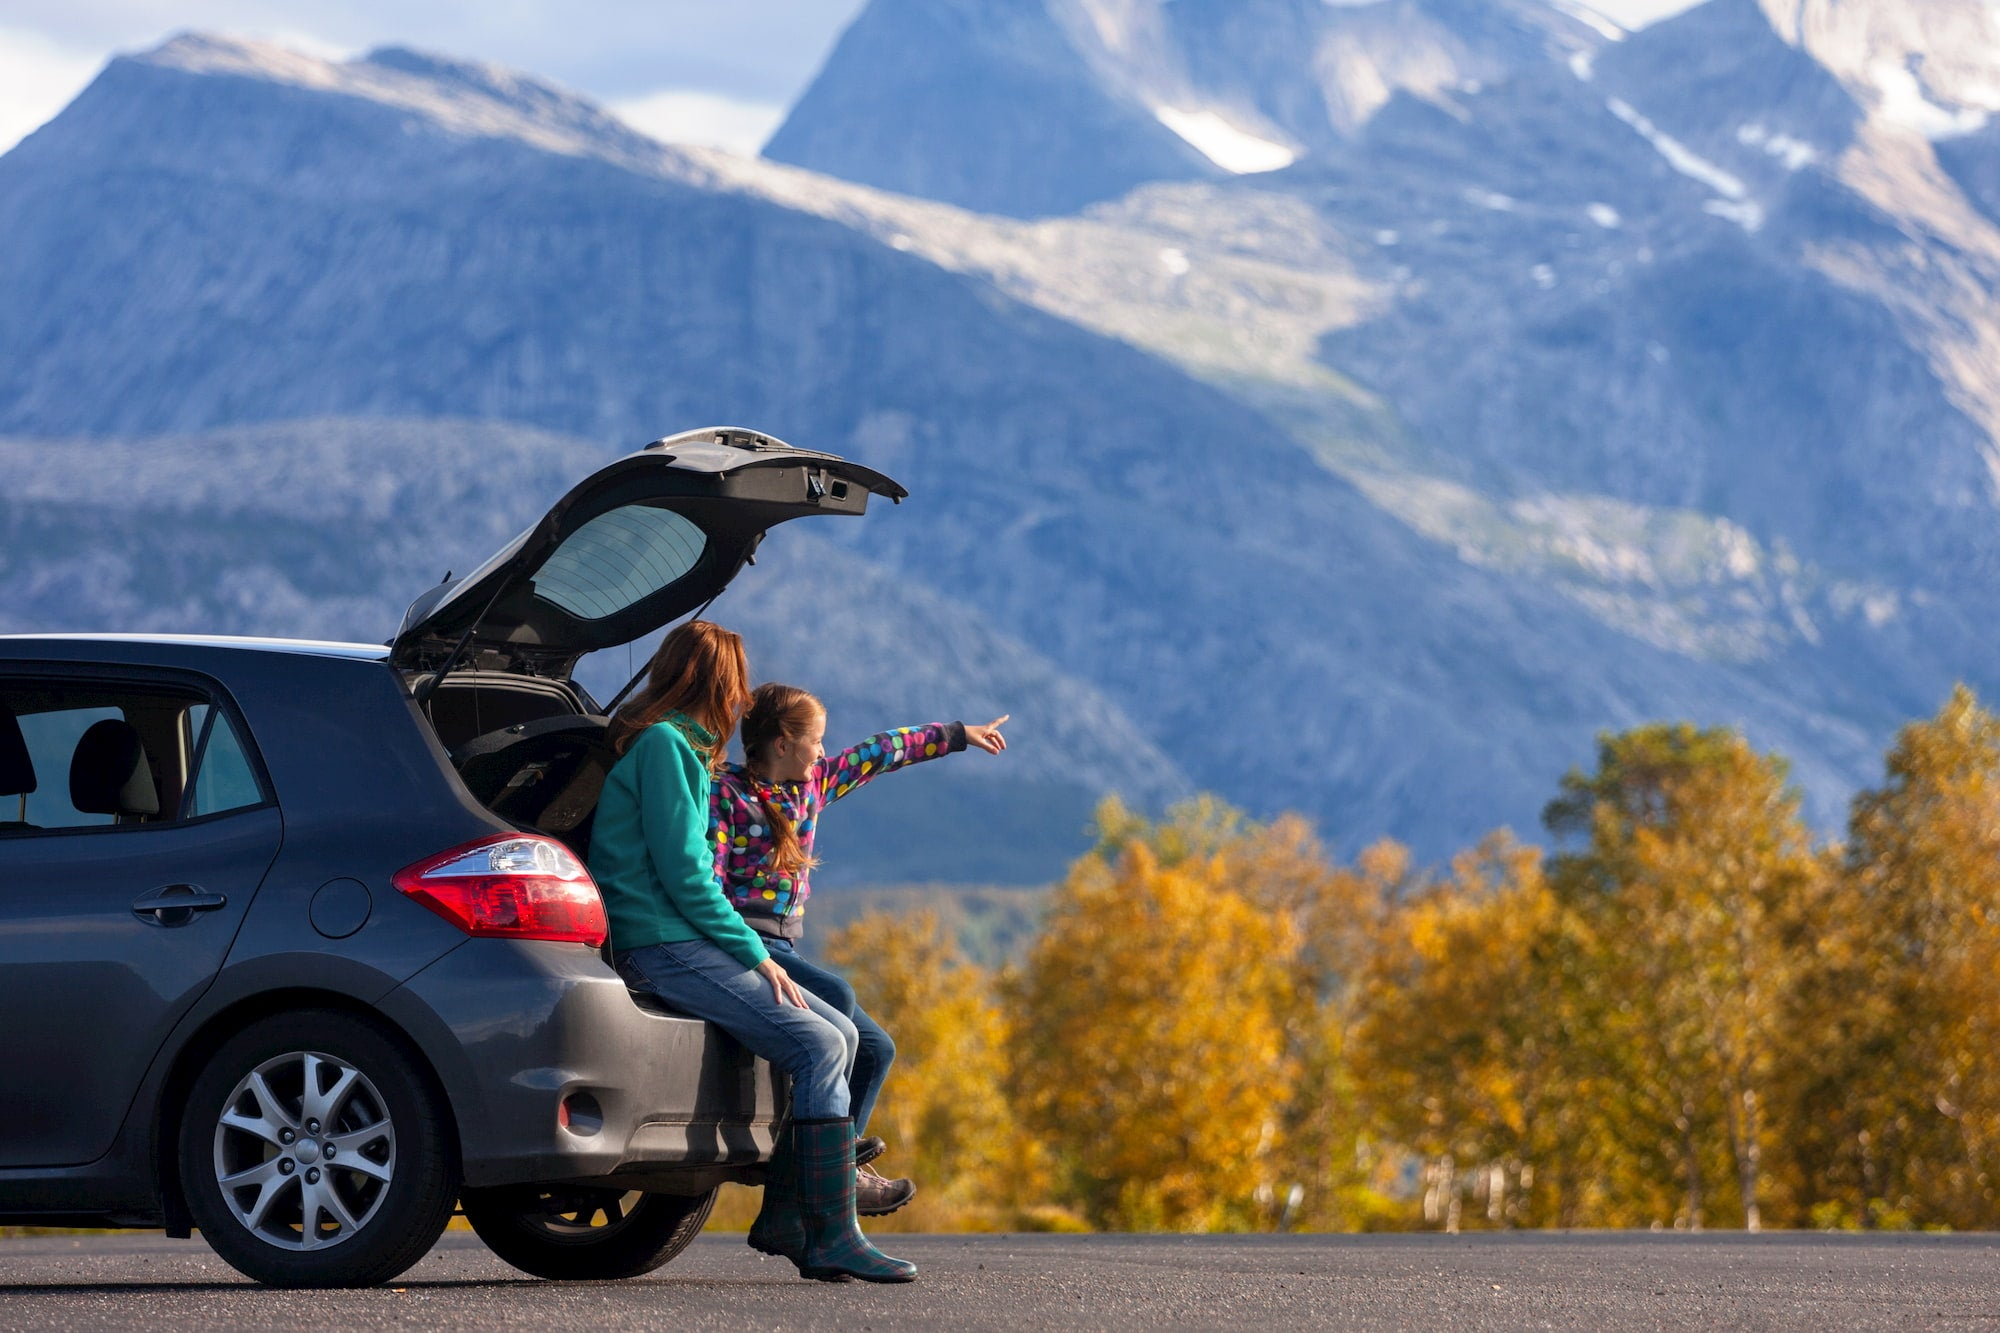 Young girl stand beside her mom in front of a car pointing out into an alpine landscape.